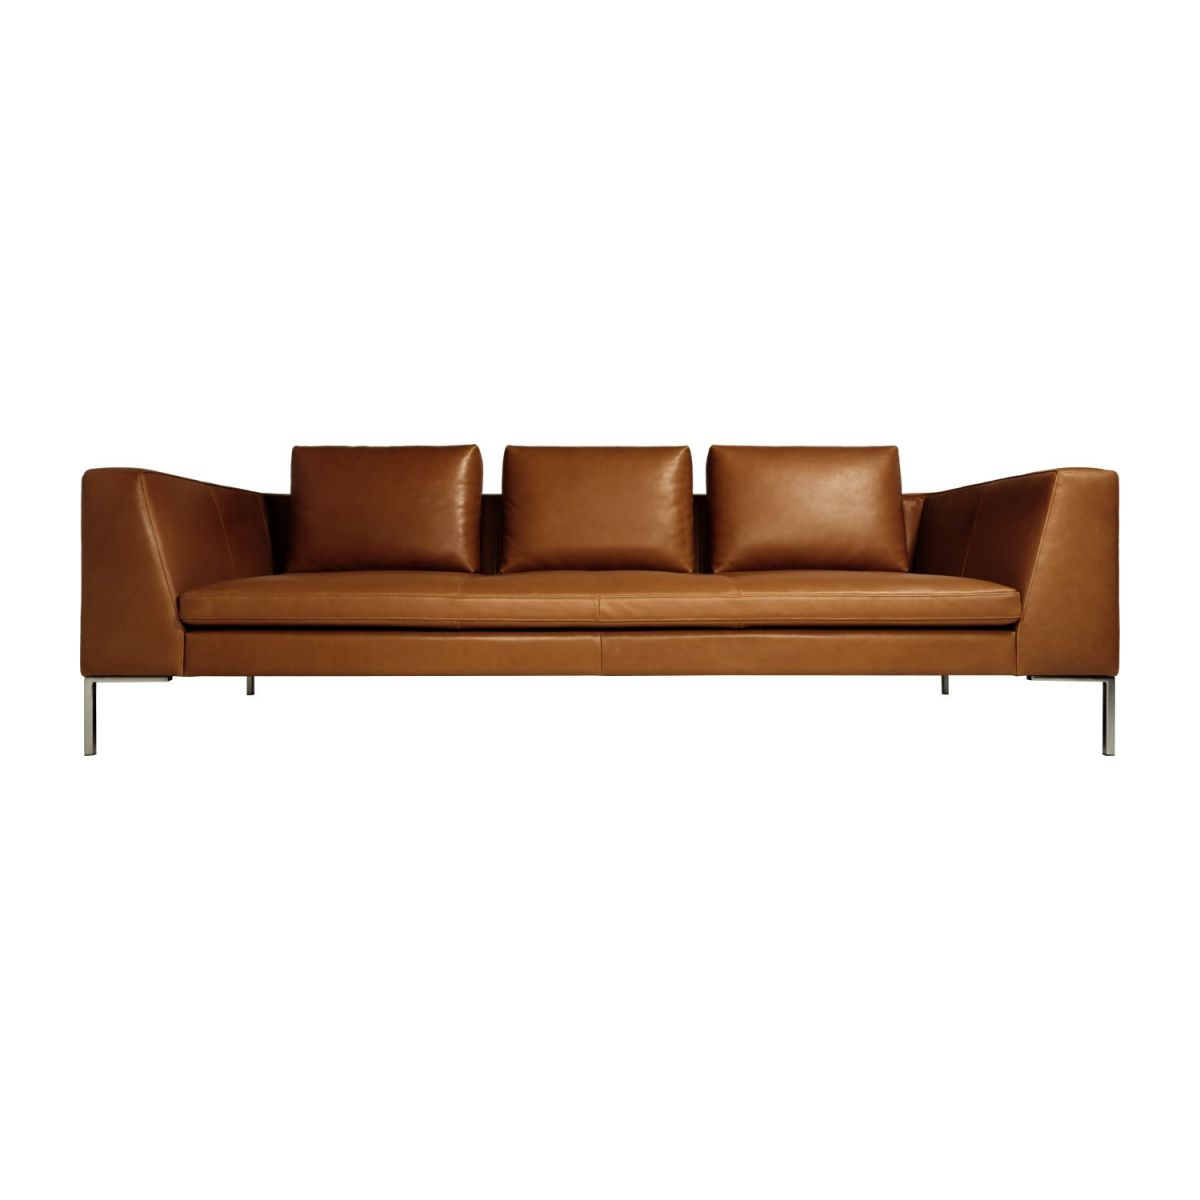 3-Sitzer Sofa aus Anilinleder Vintage Leather old chestnut n°4